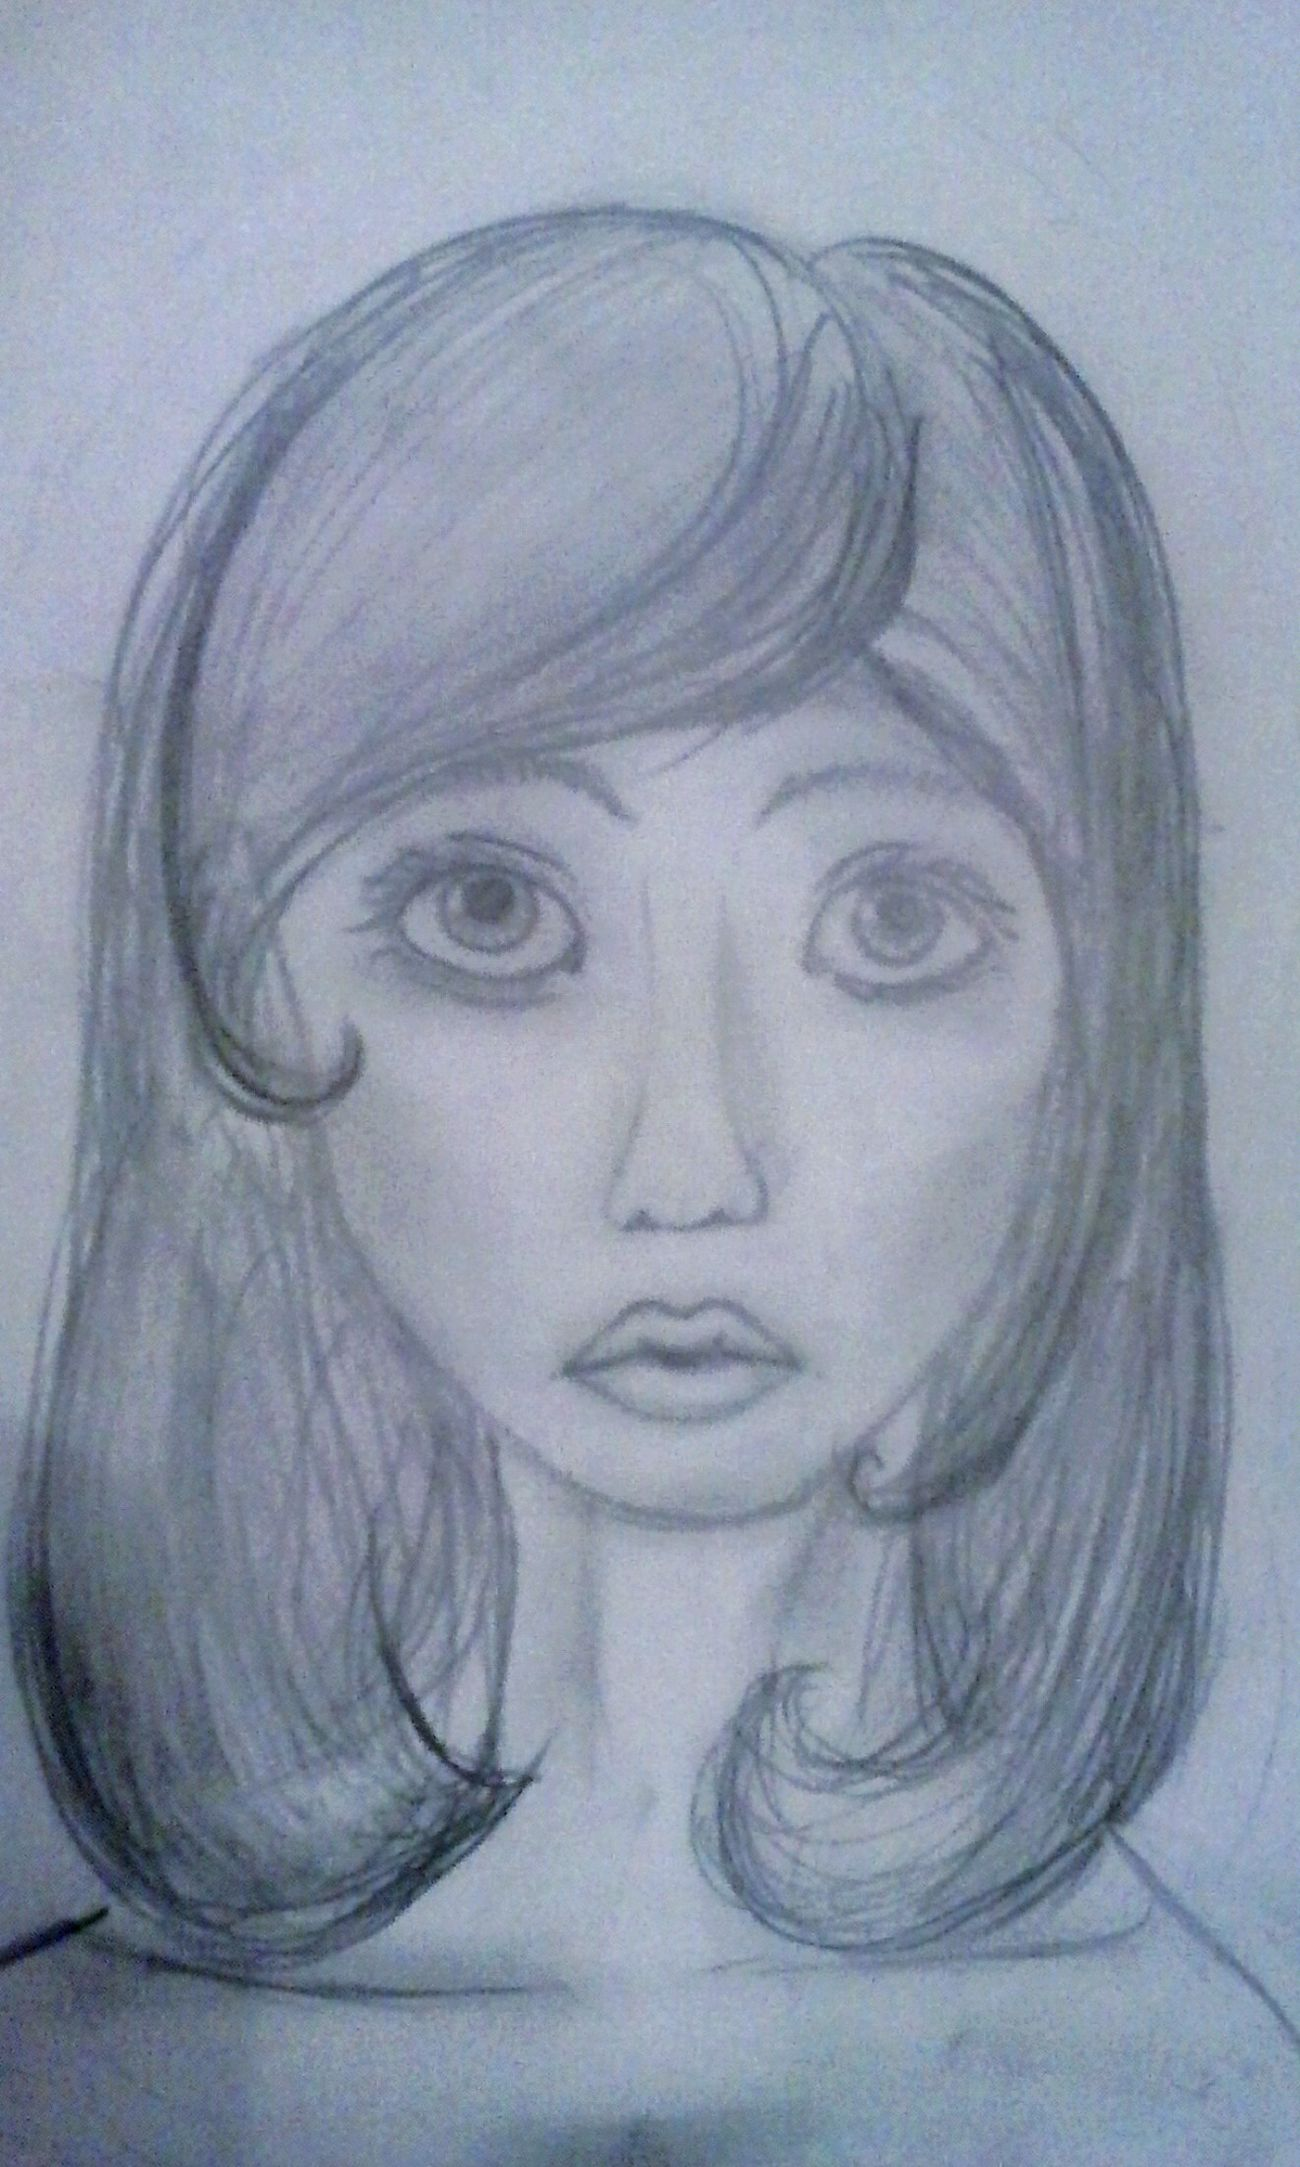 The Corpse Bride Drawing Creativity Art Portrait Of A Woman Woman Cartoon Person The Corpse Bride